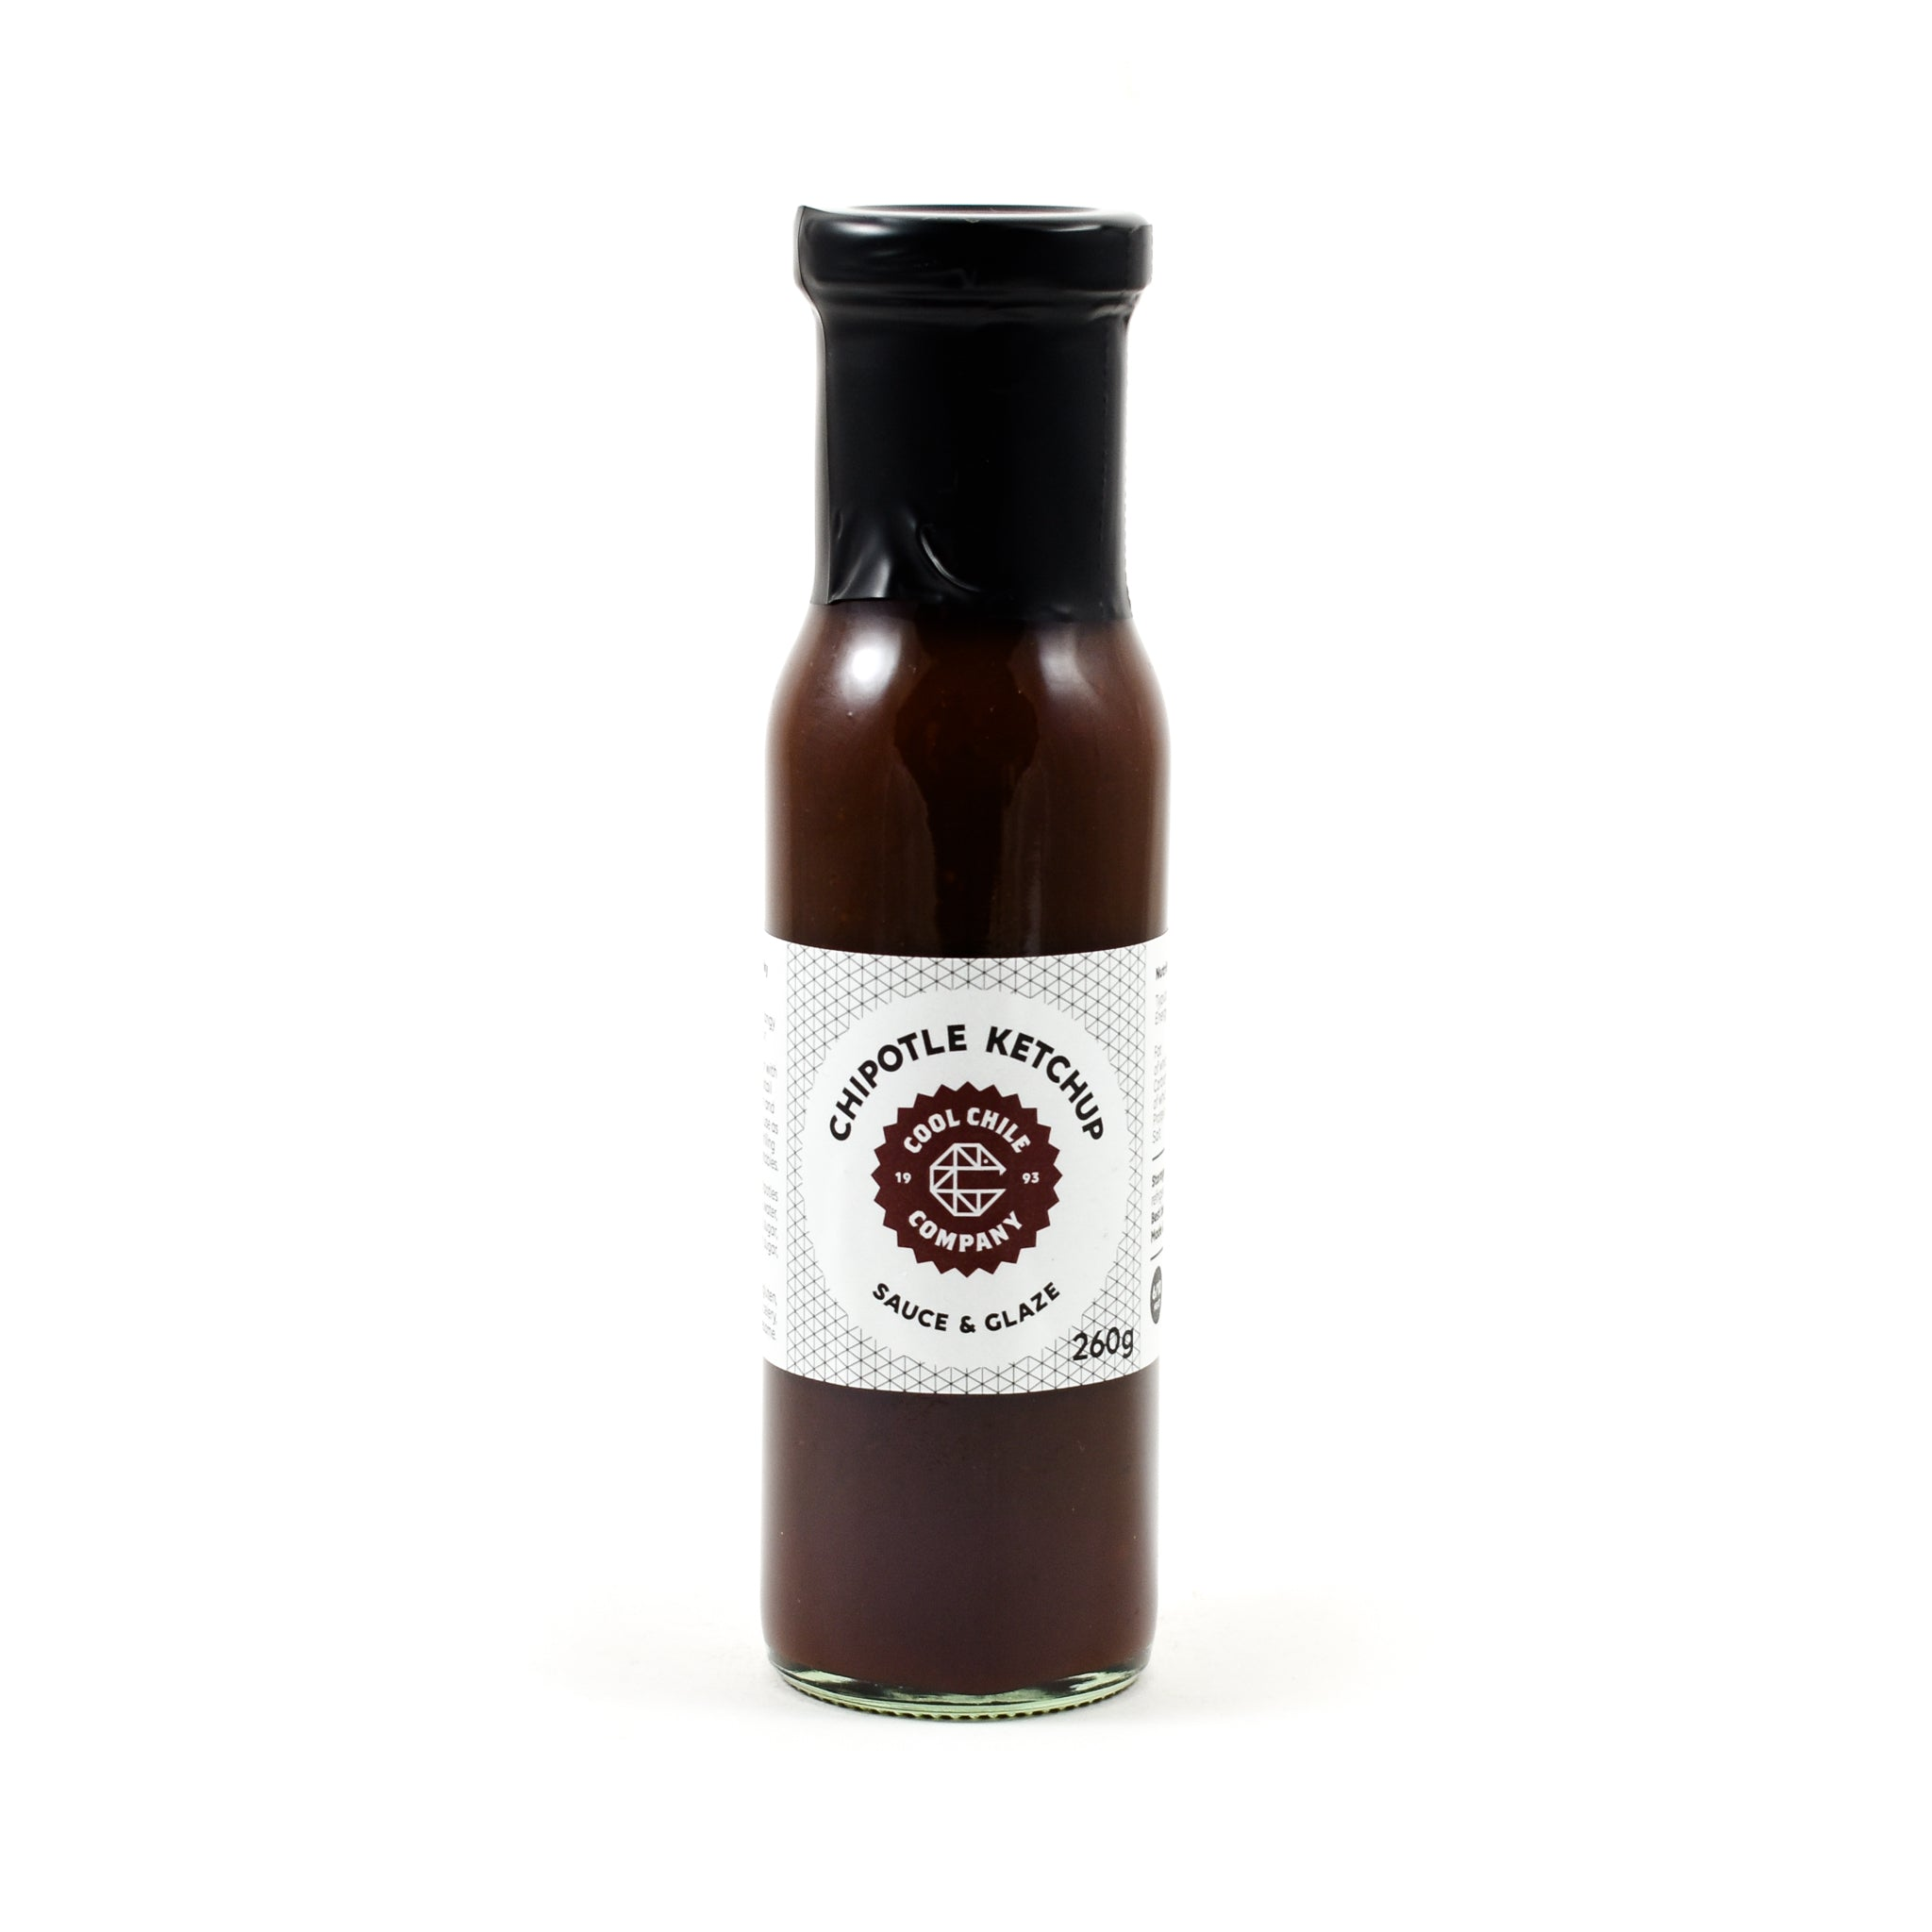 Cool Chile Co Chipotle Ketchup 260g Ingredients Sauces & Condiments American Sauces & Condiments